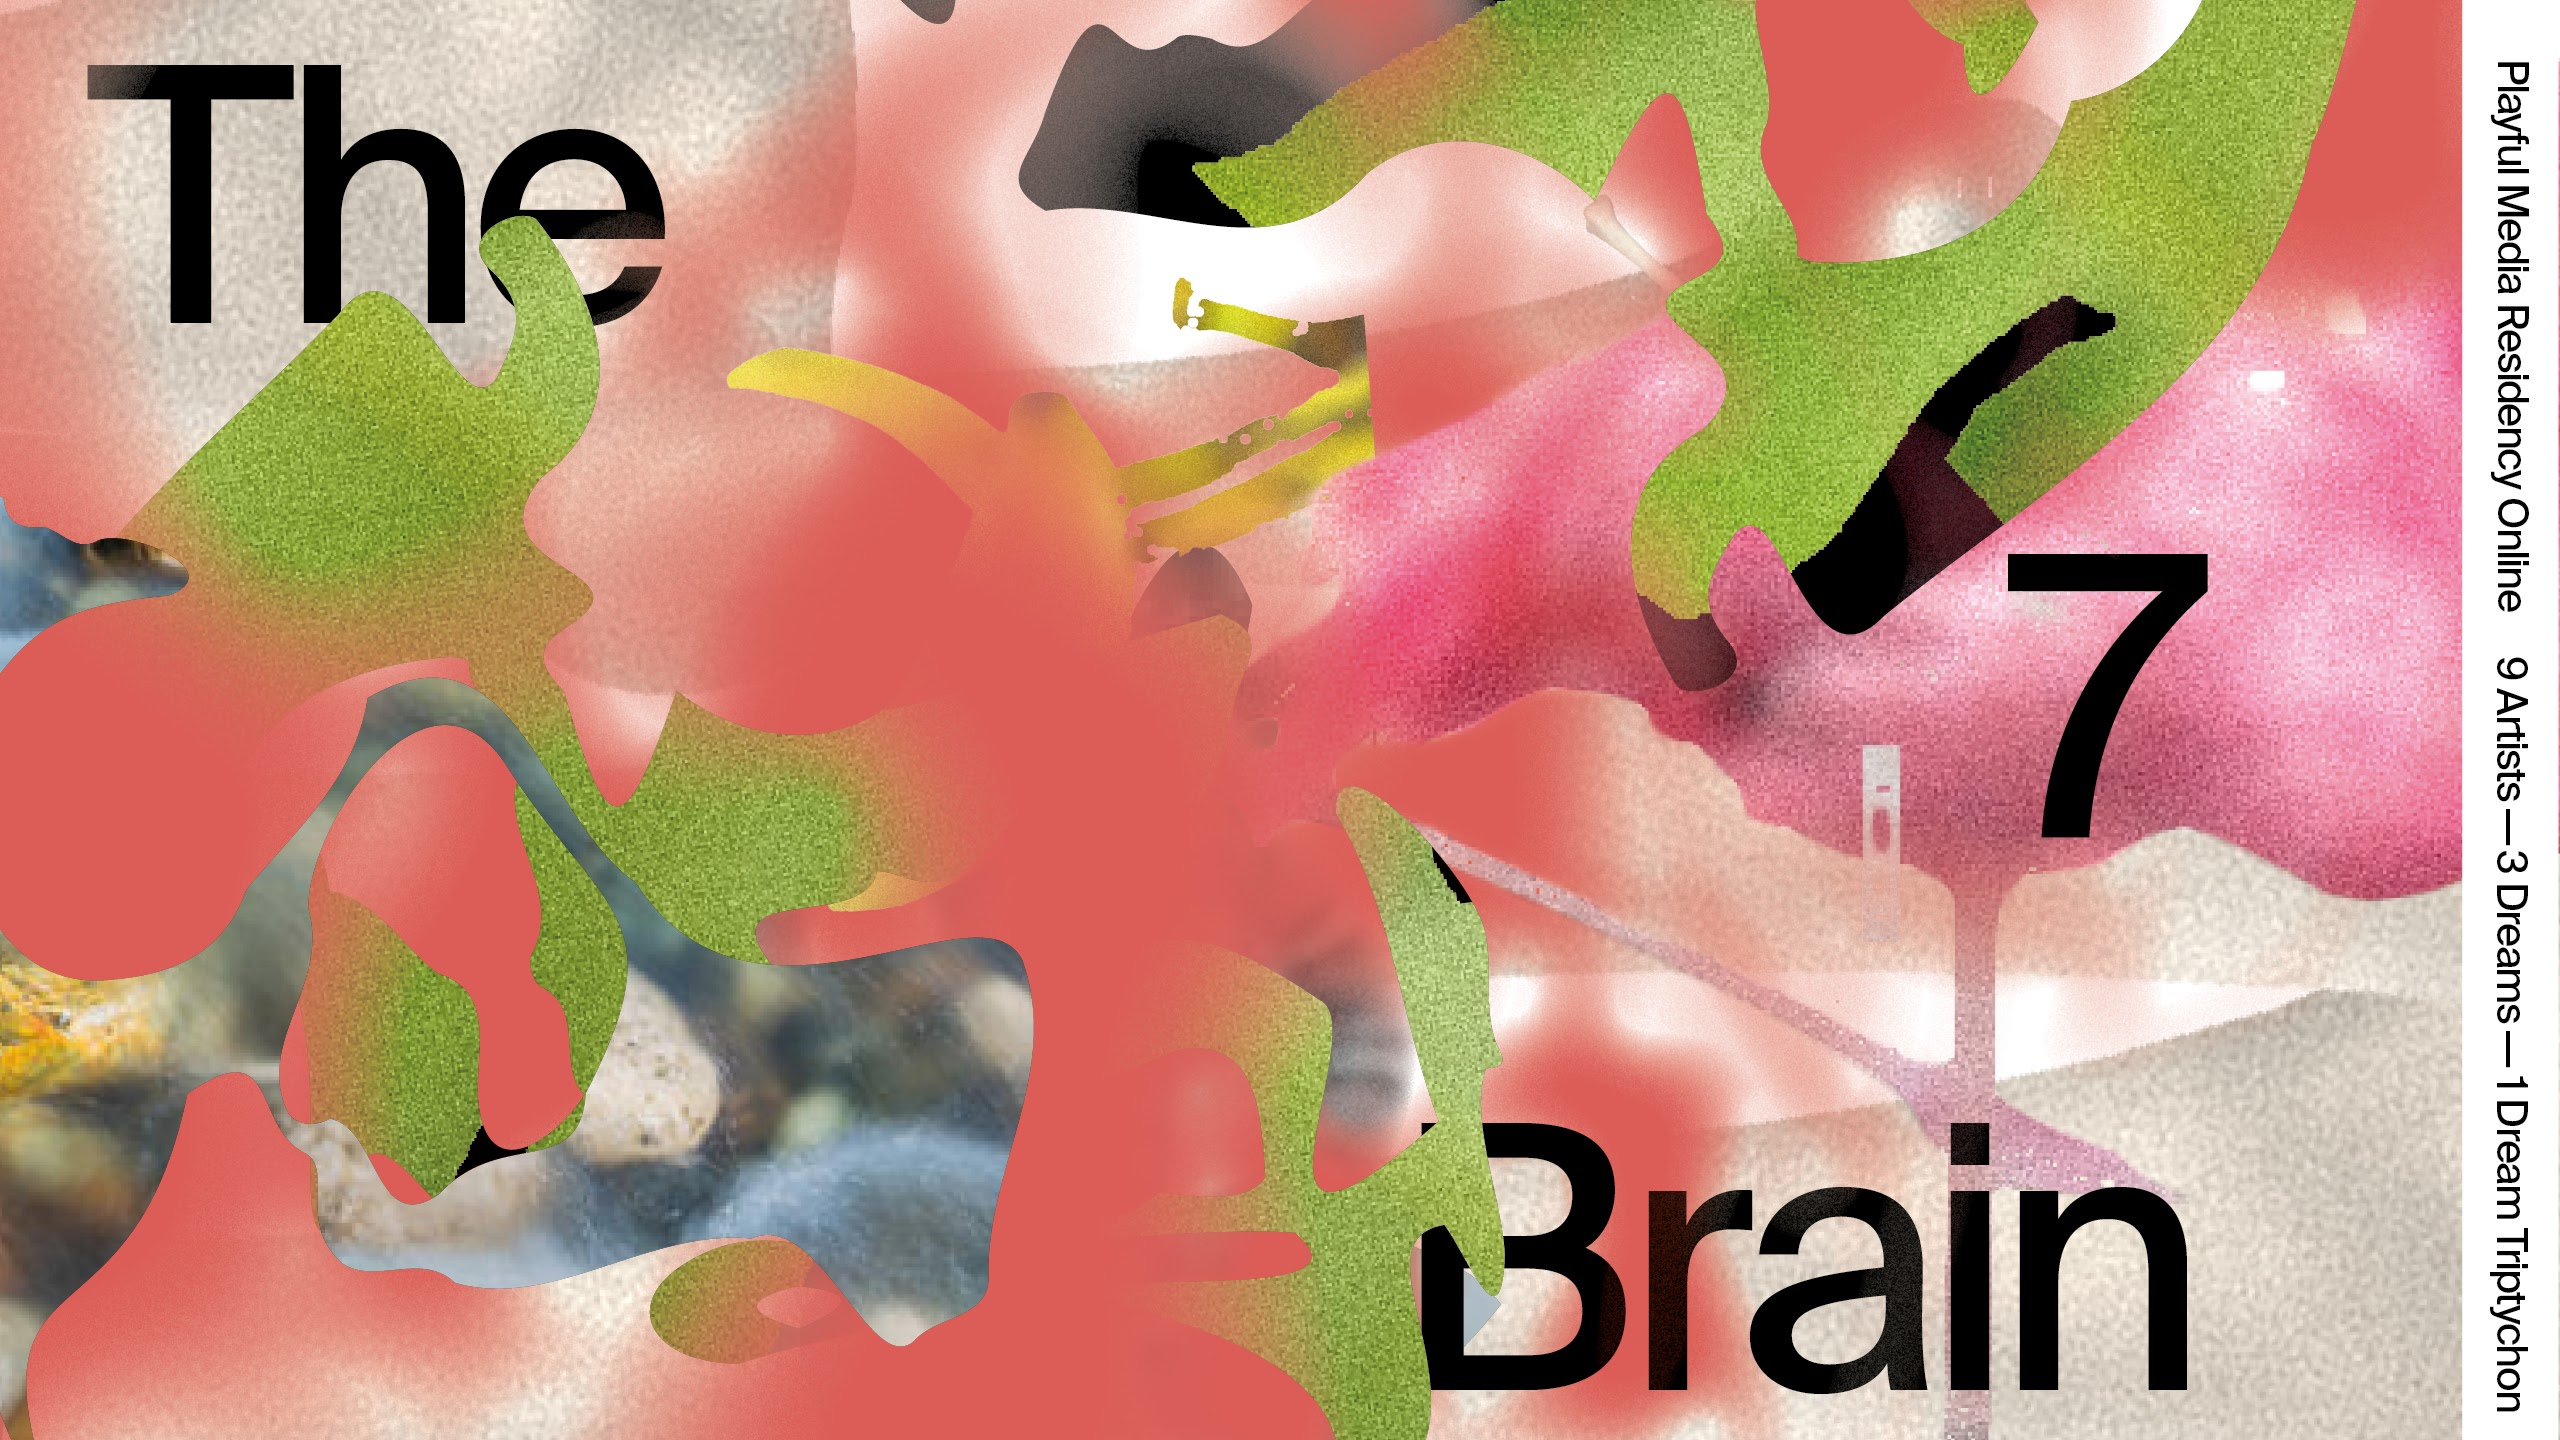 Call for Applications: The Brain 7 - Dreams - Playful Media Residency Online